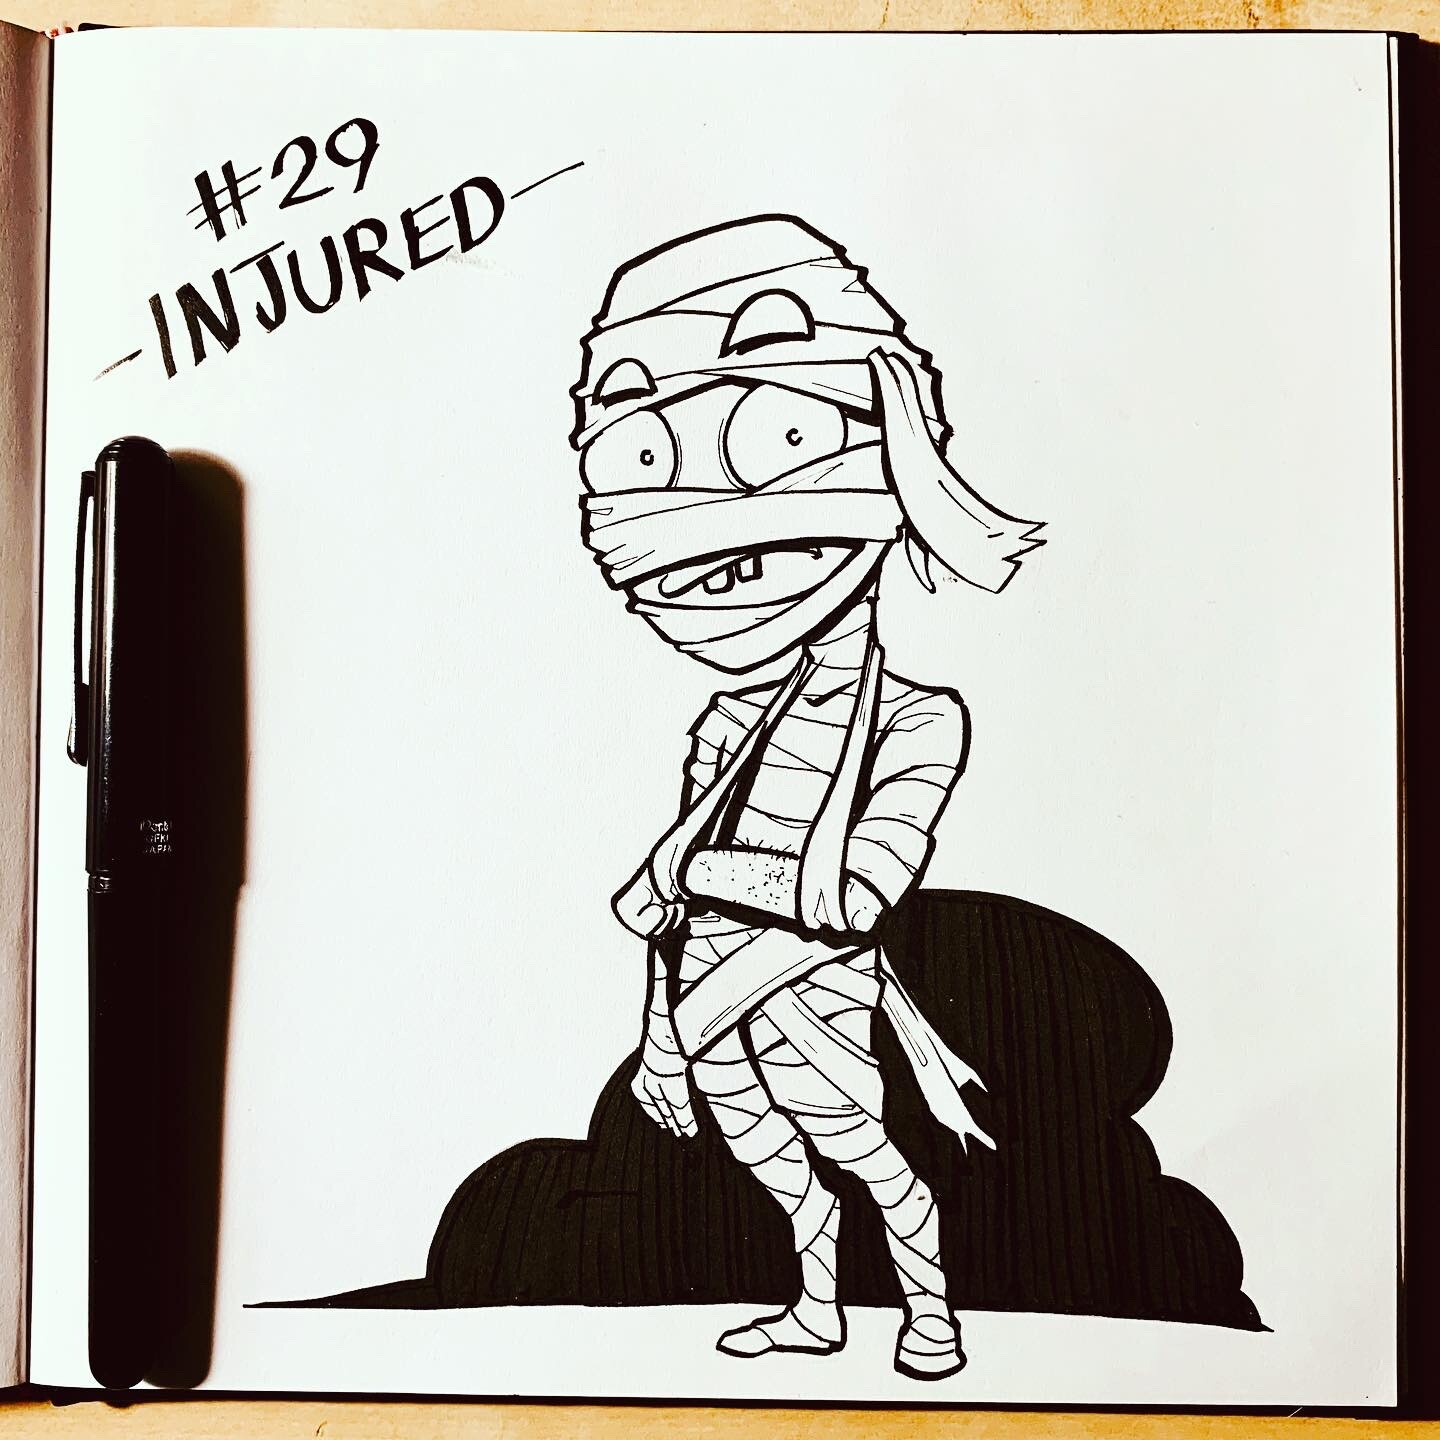 Inktober 2019: #29. Injured